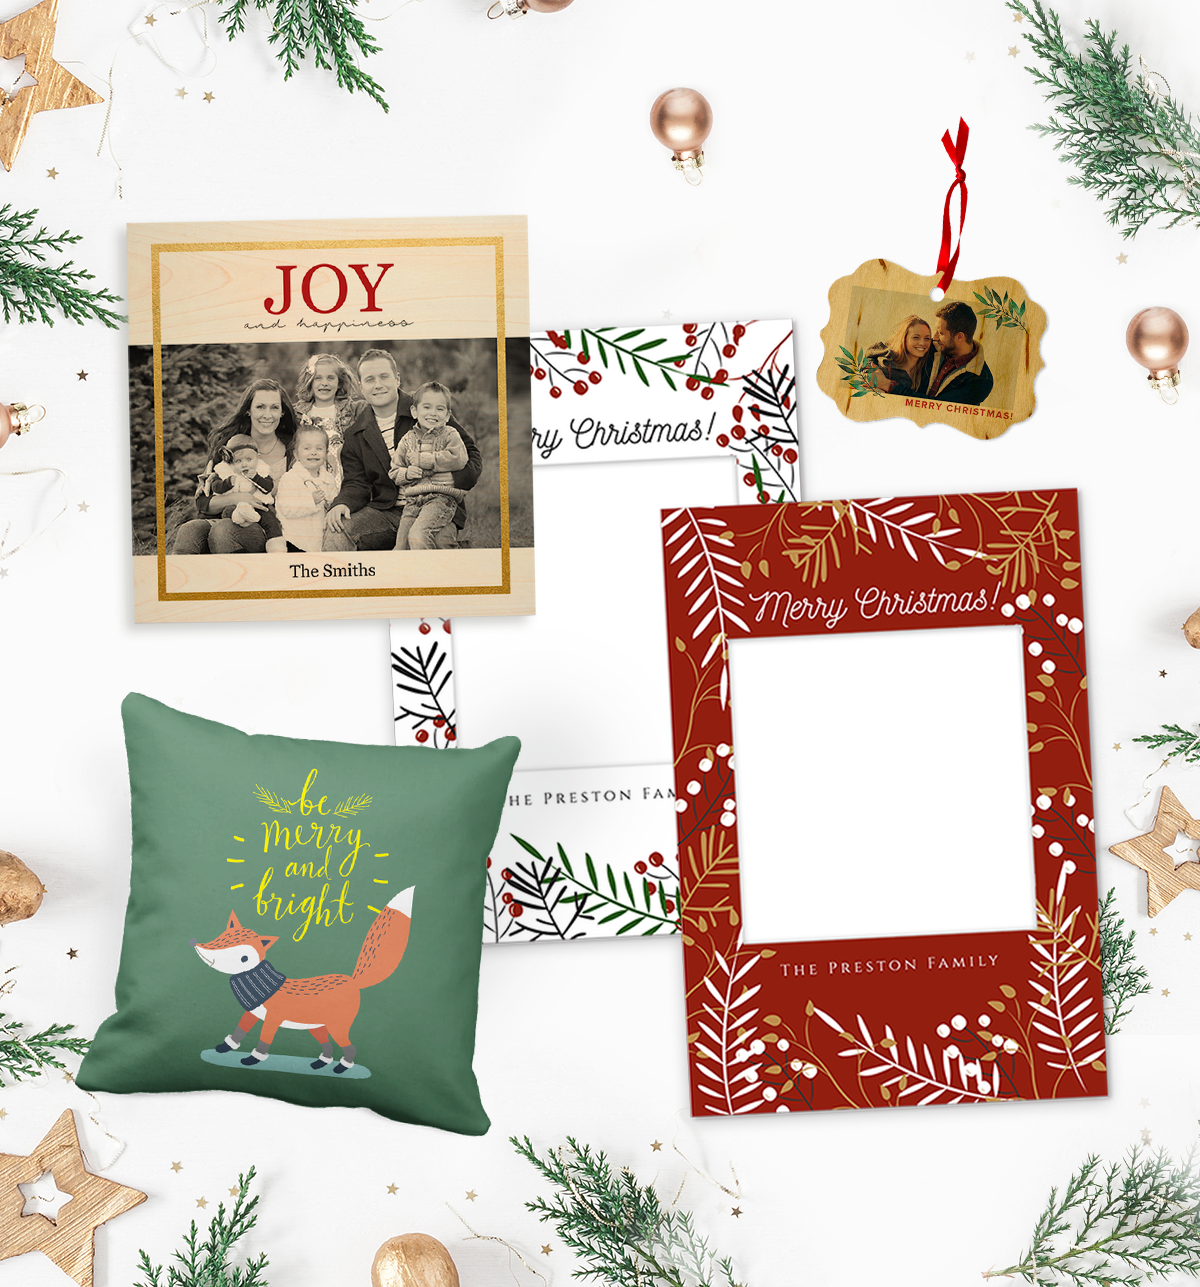 Photobook's Christmas products.